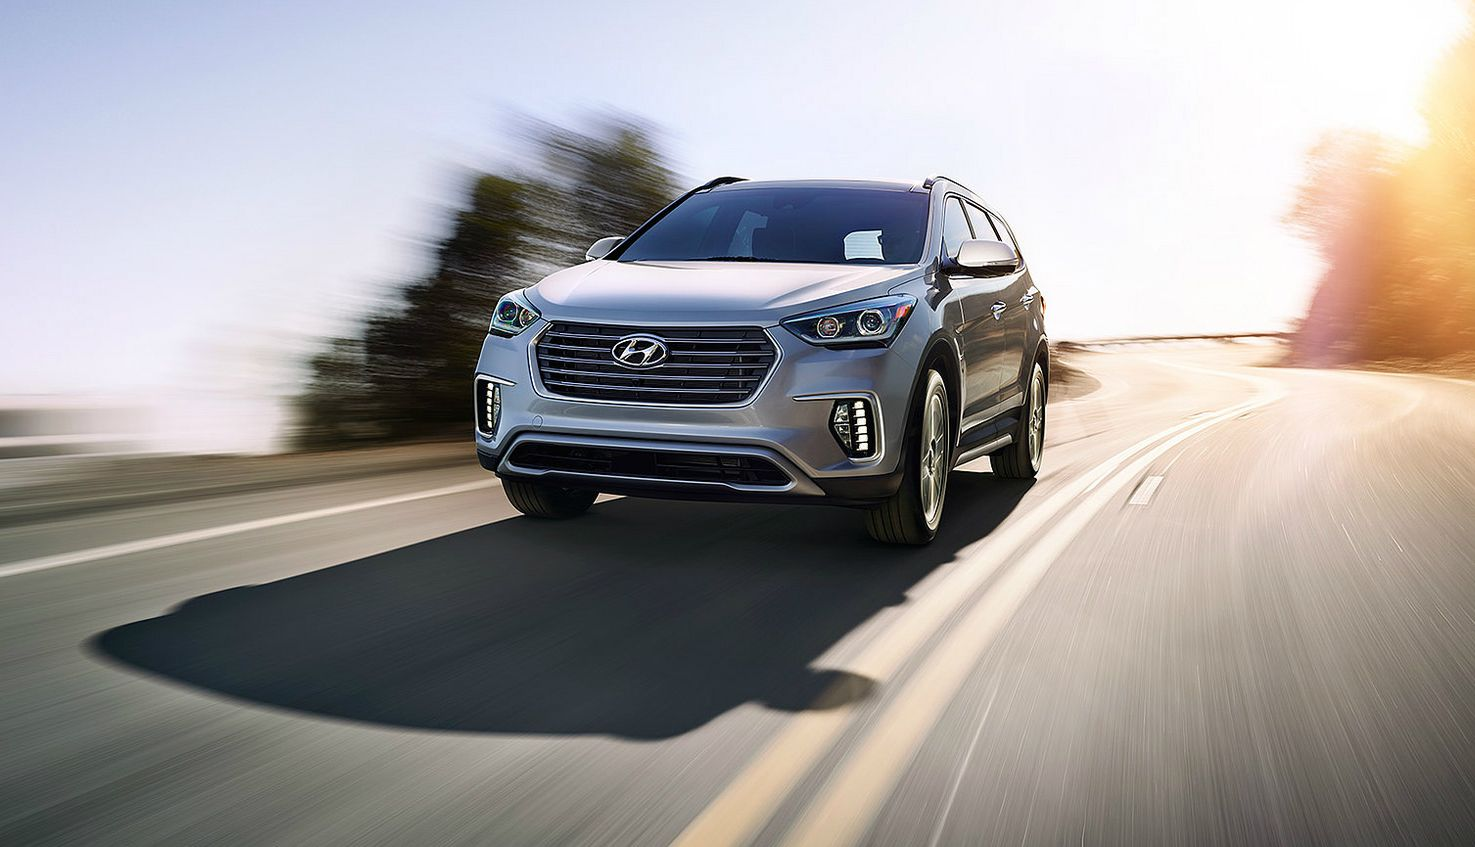 2018 Hyundai Santa Fe at Route 44 Hyundai in Raynham, MA